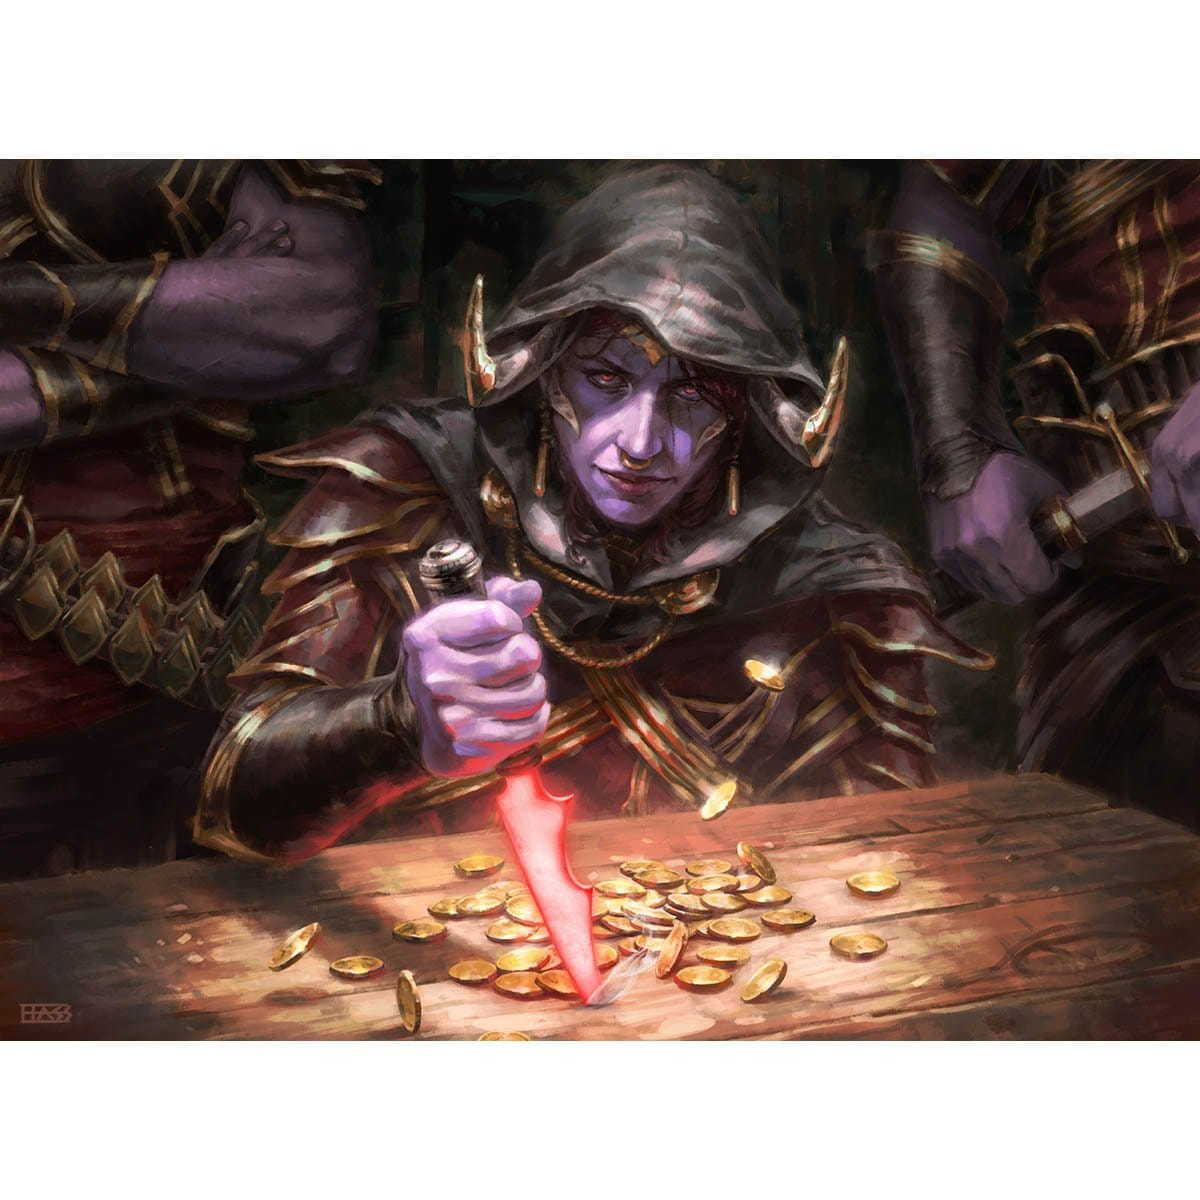 Azra Oddsmaker Print - Print - Original Magic Art - Accessories for Magic the Gathering and other card games